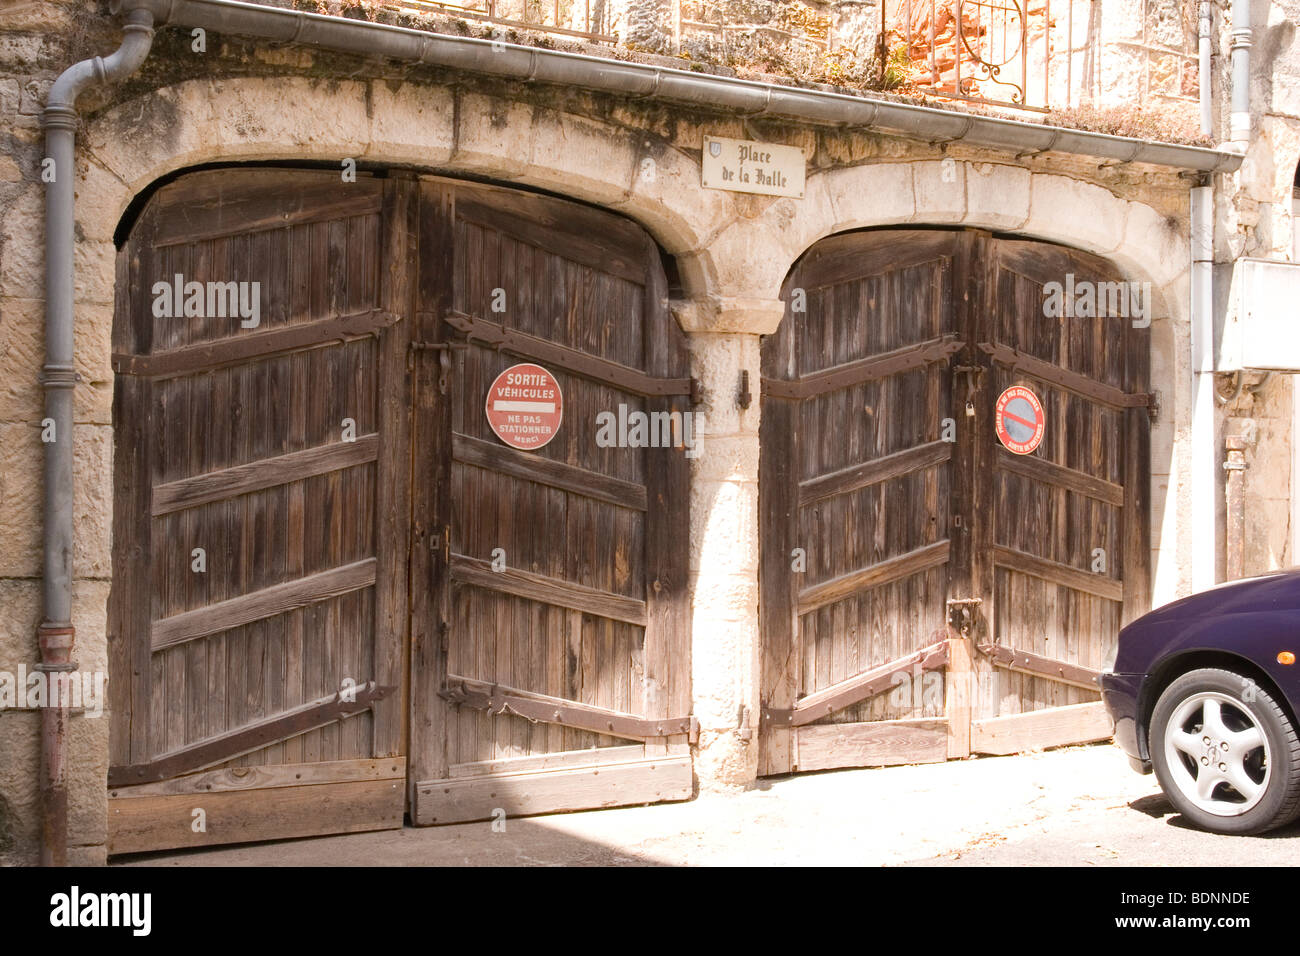 Pair of wooden garage doors in a stone building in the town of puy pair of wooden garage doors in a stone building in the town of puy leveque french no parking signs rubansaba